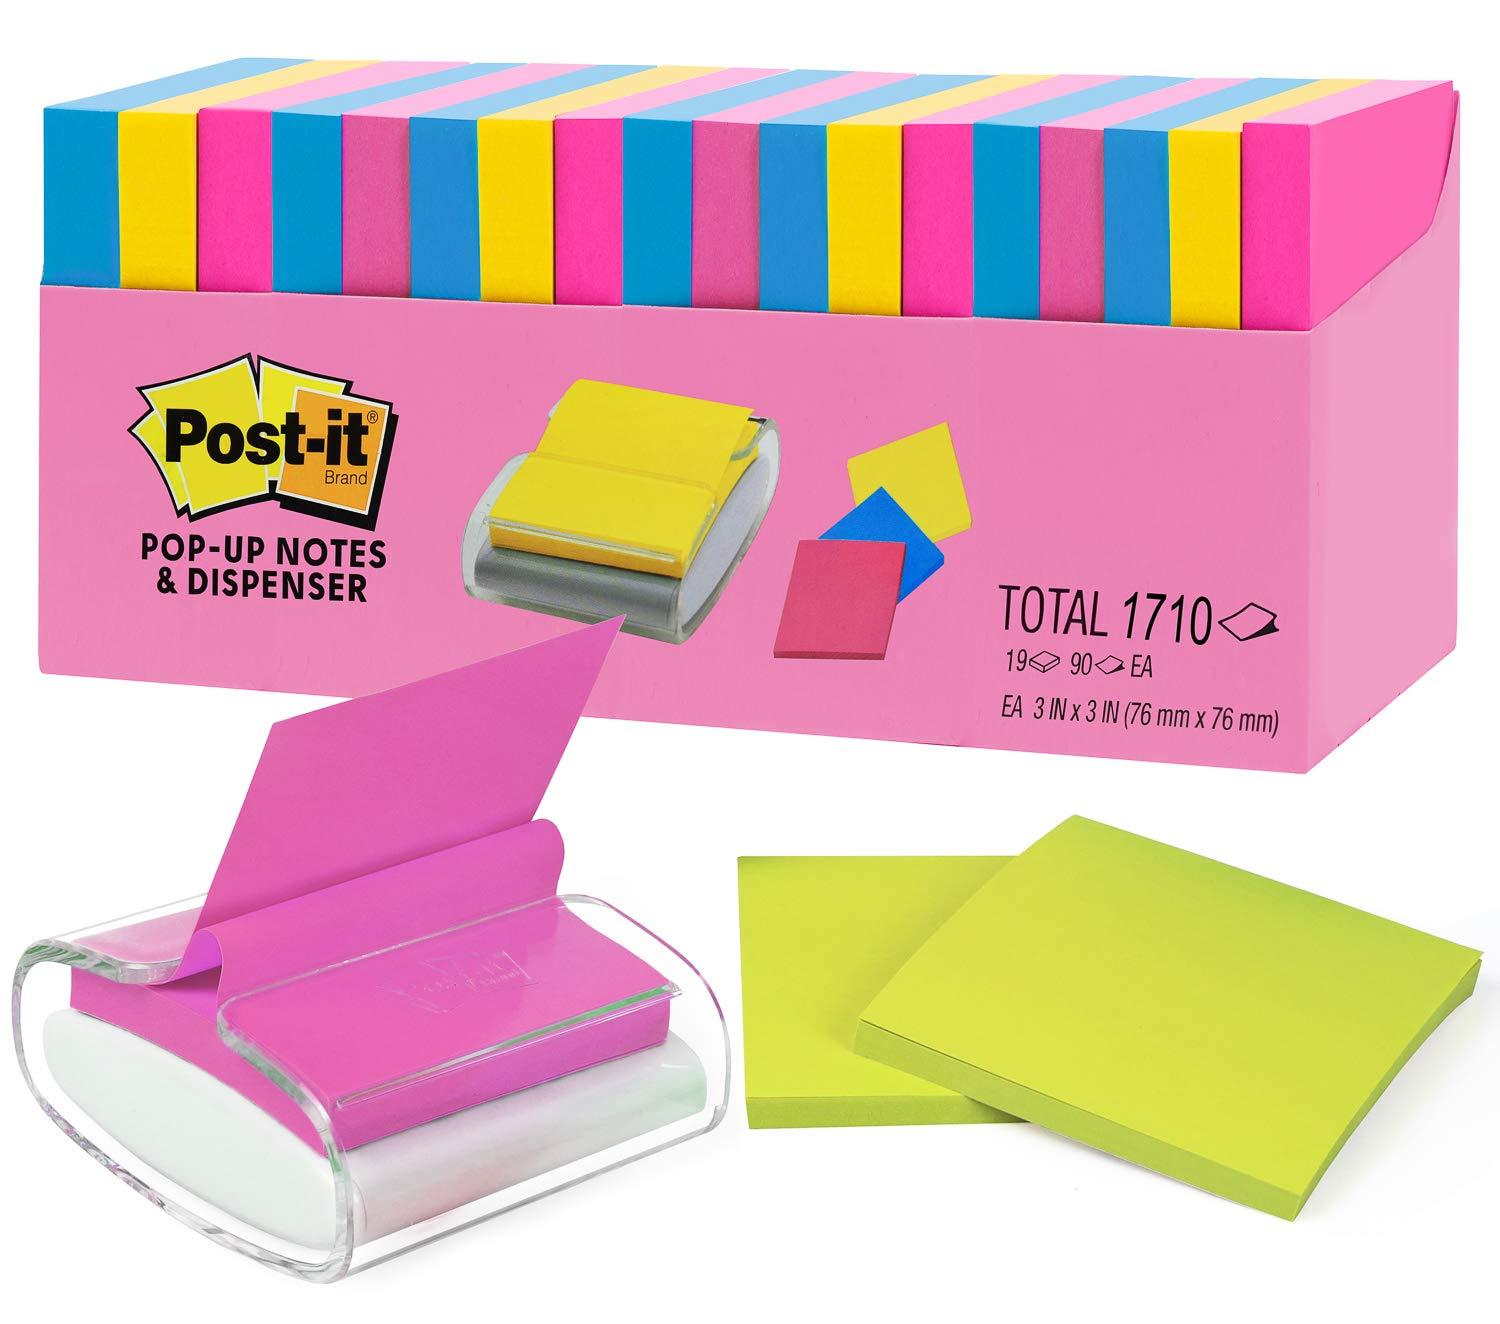 Post-It Sticky Notes with Dispenser (3'' x 3'') 19 Individual Pads 1710 Sheets Colorful Adhesive Notepads Office Home Classroom Desk Organizers by Post-it